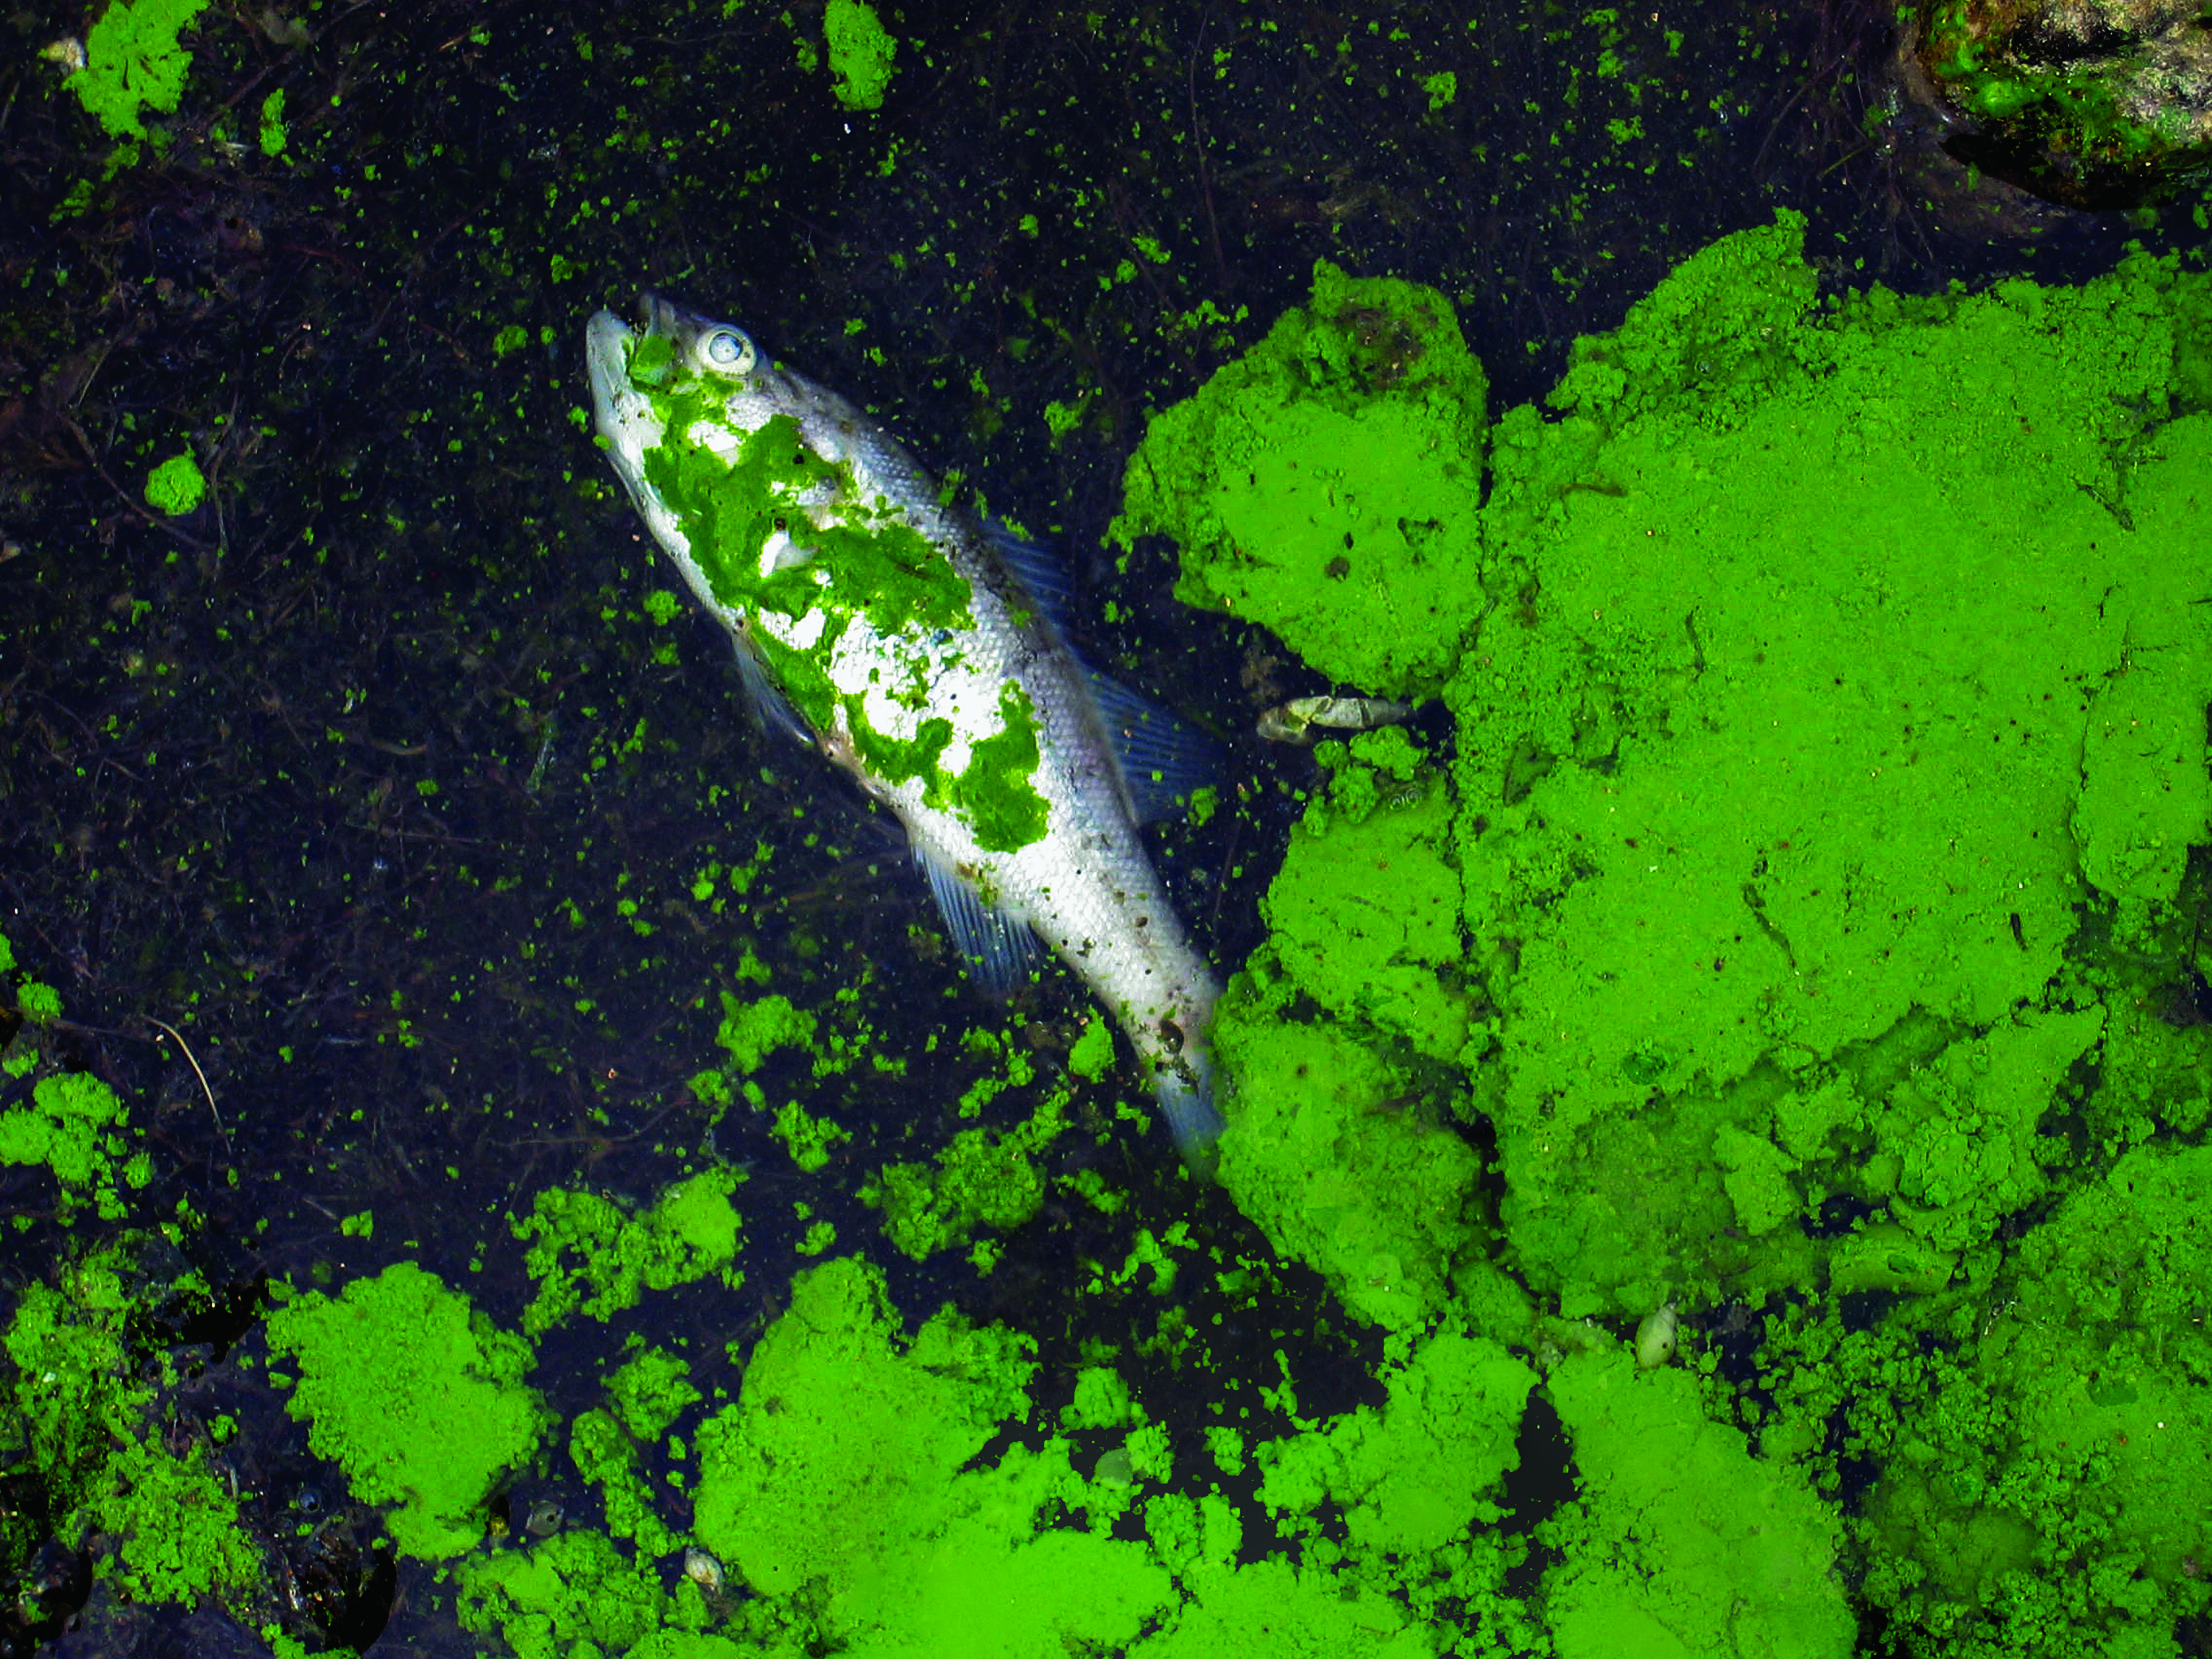 Cyanobacterial accumulation at Binder Lake, Iowa, dominated by the blue green algae Microcystis sp. with a dead fish.